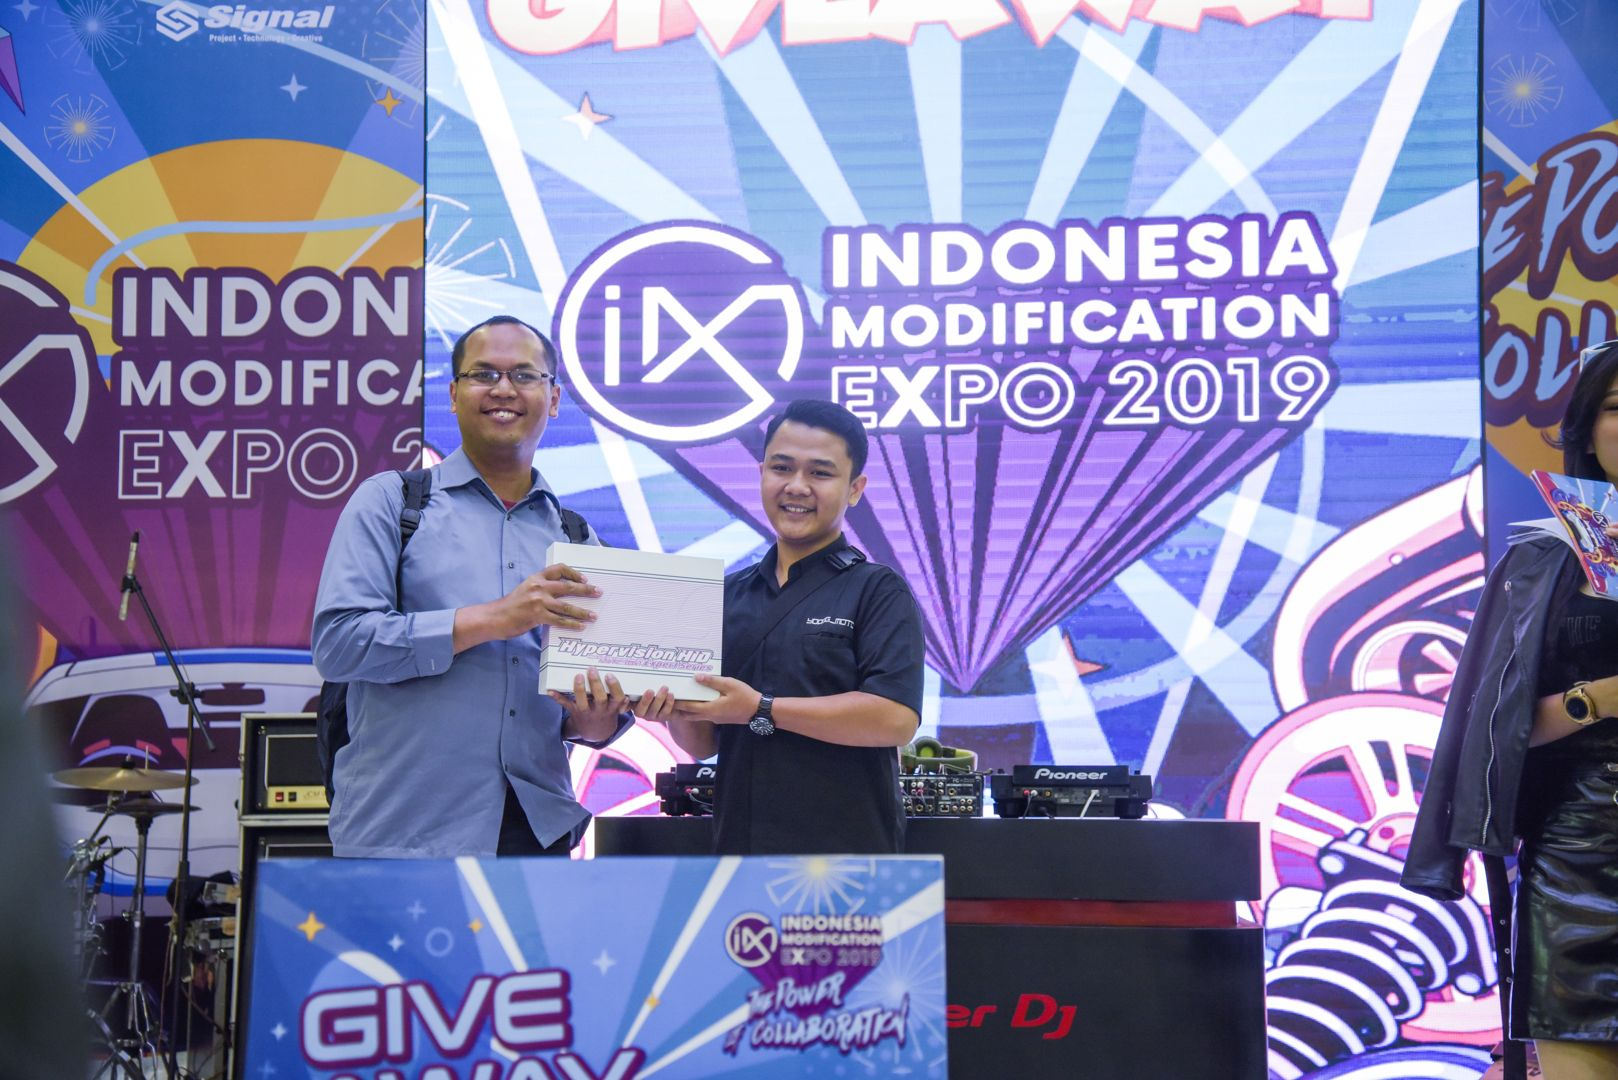 Imx - Indonesia modification expo giveaway 2019 (6)